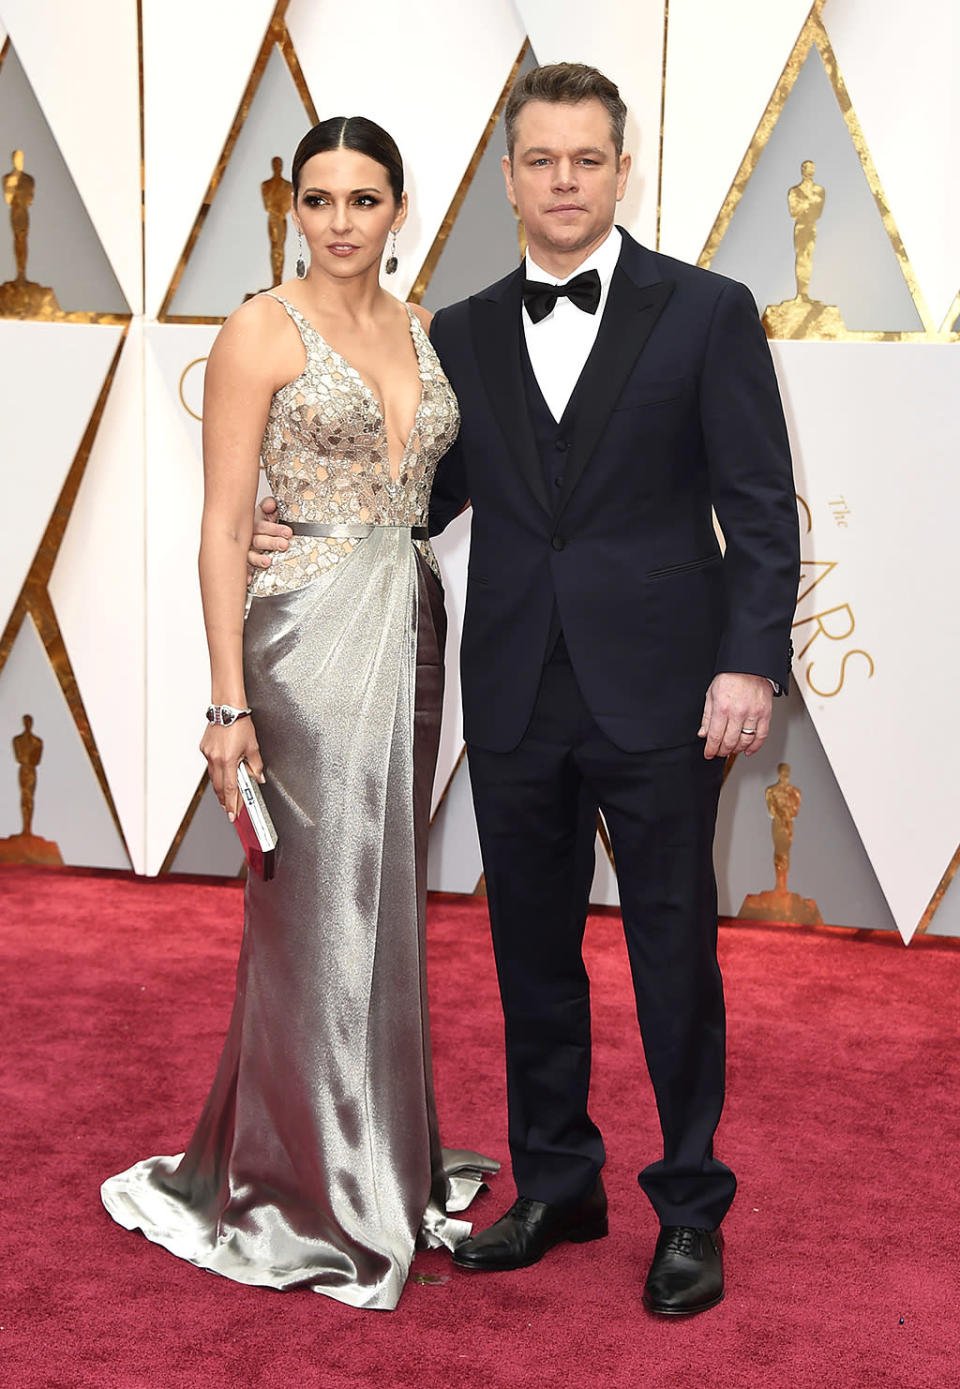 <p>Luciana Barroso and Matt Damon arrive at the Oscars on Sunday, Feb. 26, 2017, at the Dolby Theatre in Los Angeles. (Photo by Jordan Strauss/Invision/AP) </p>